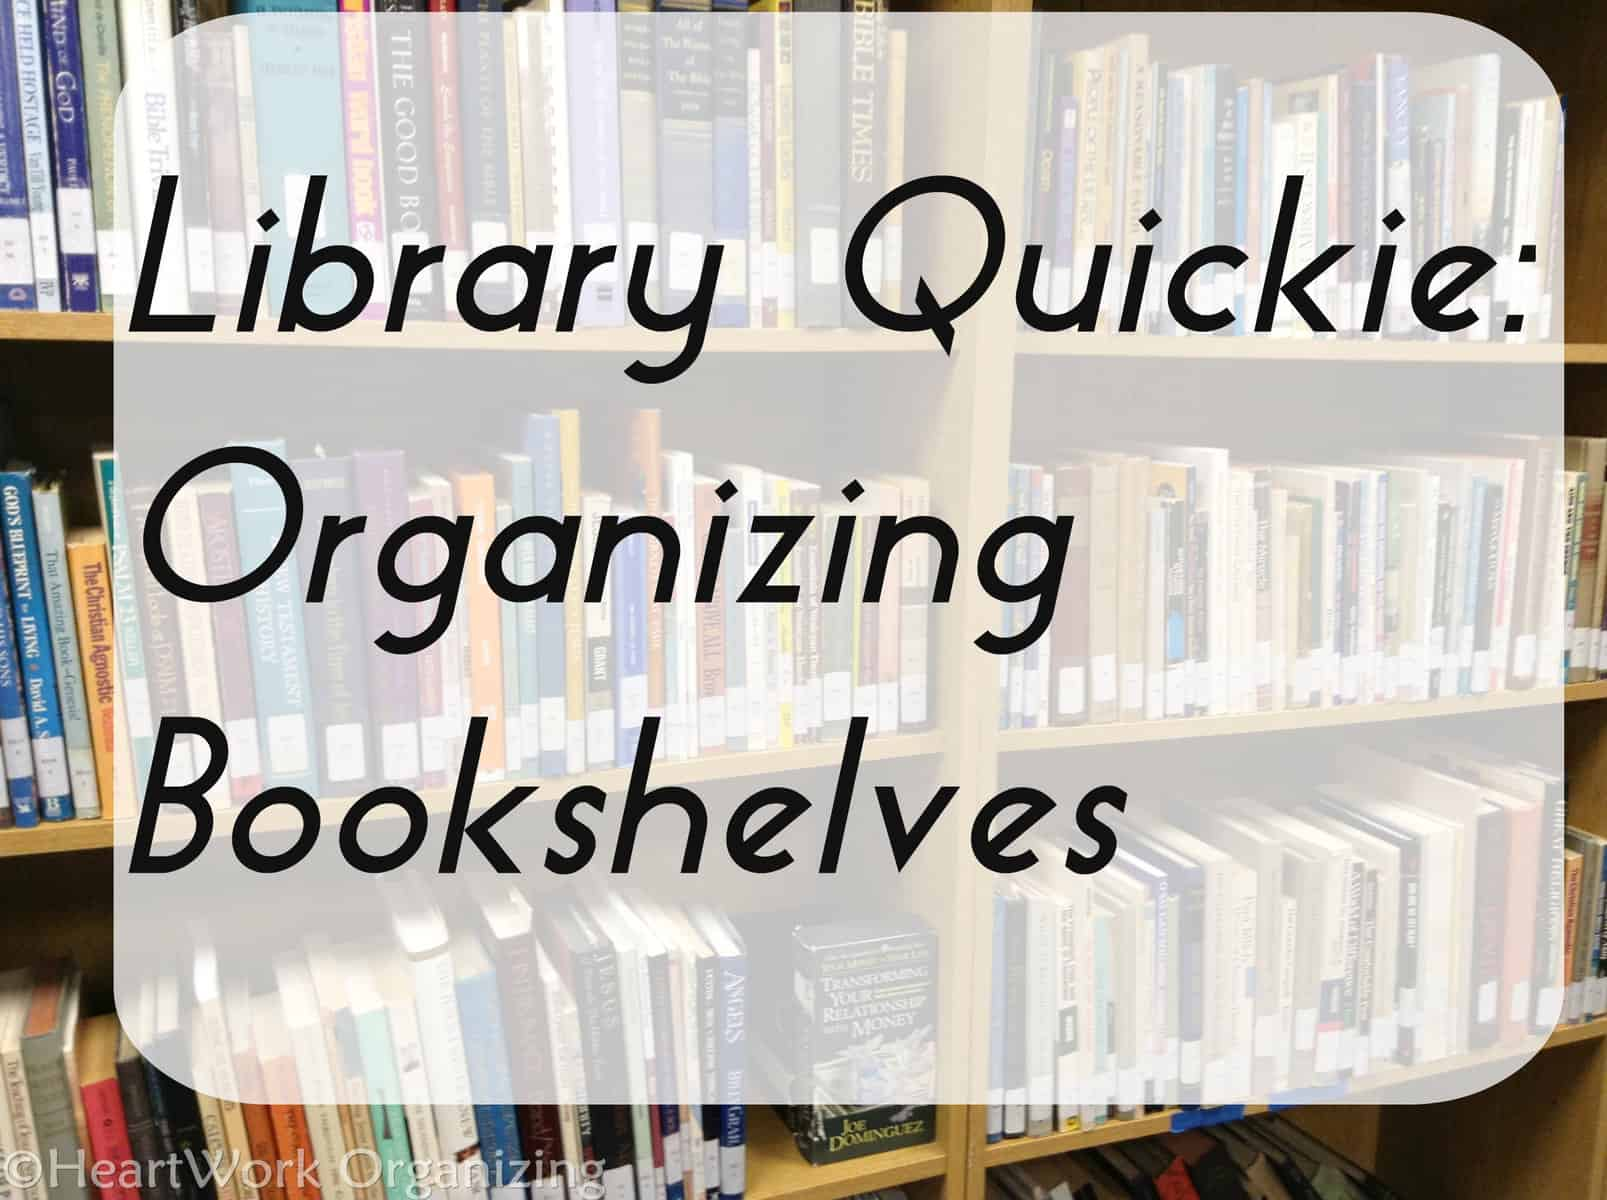 Library Quickie: Organizing Bookshelves | HeartWork Organizing, Tips ...